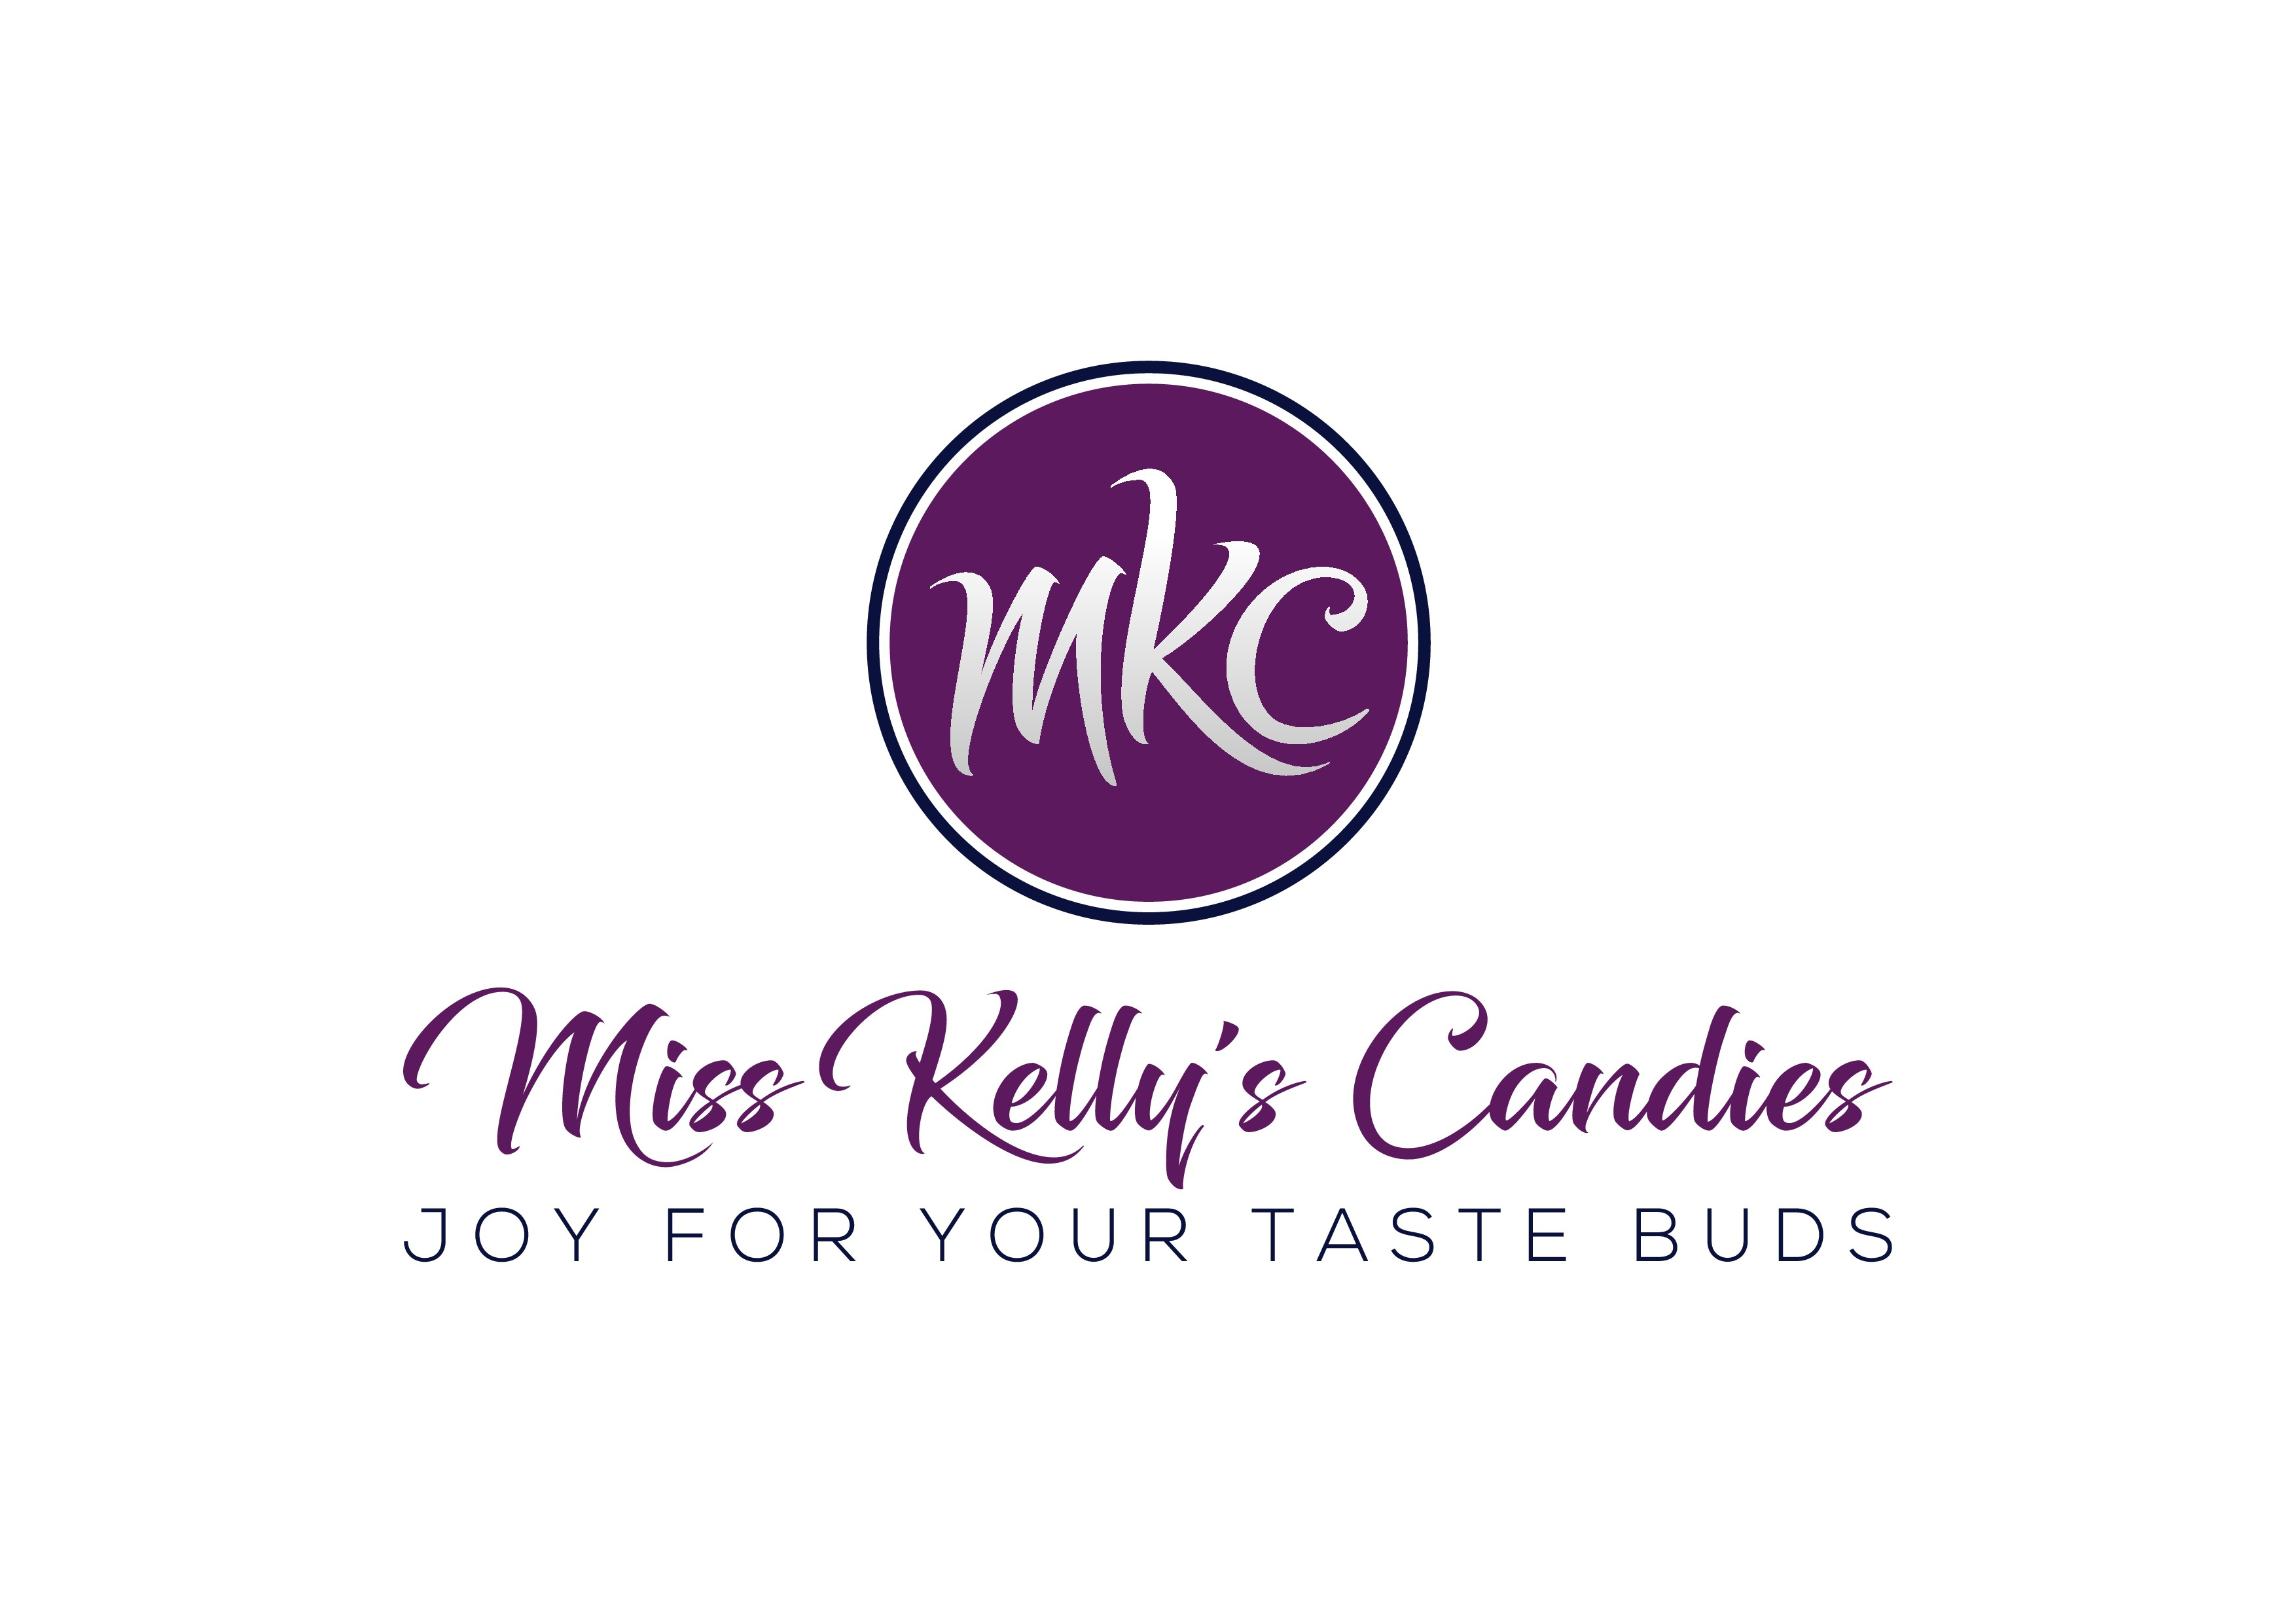 Gourmet candy company seeks a brand redesign combining modern elegance with artisanship.